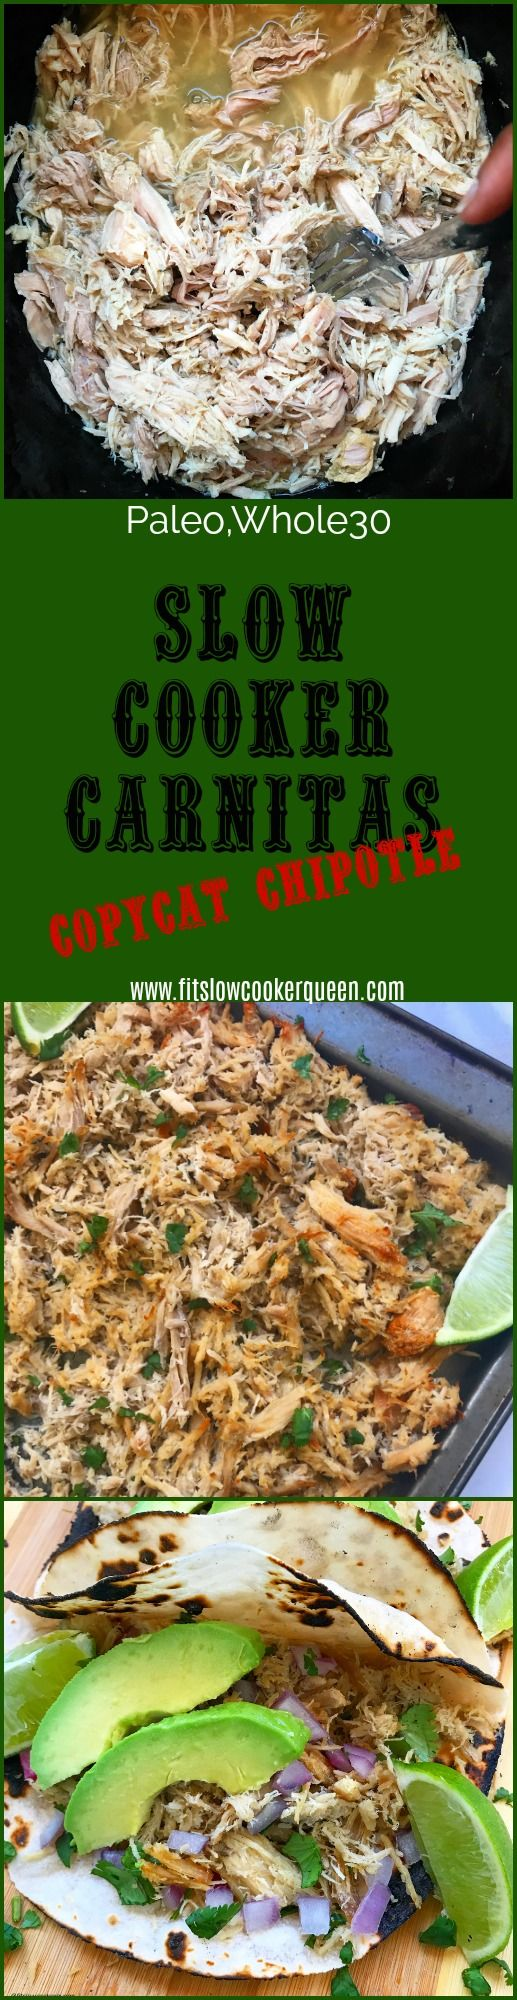 paleo whole30 slow cooker crockpot - This is a slow cooker copycat of Chipotle's carnitas recipe. The end result is succulent shredded pork that's then broiled in the oven until crisp. Being low-carb, paleo, whole30, keto and more, you can use this carnitas meat in so many ways.